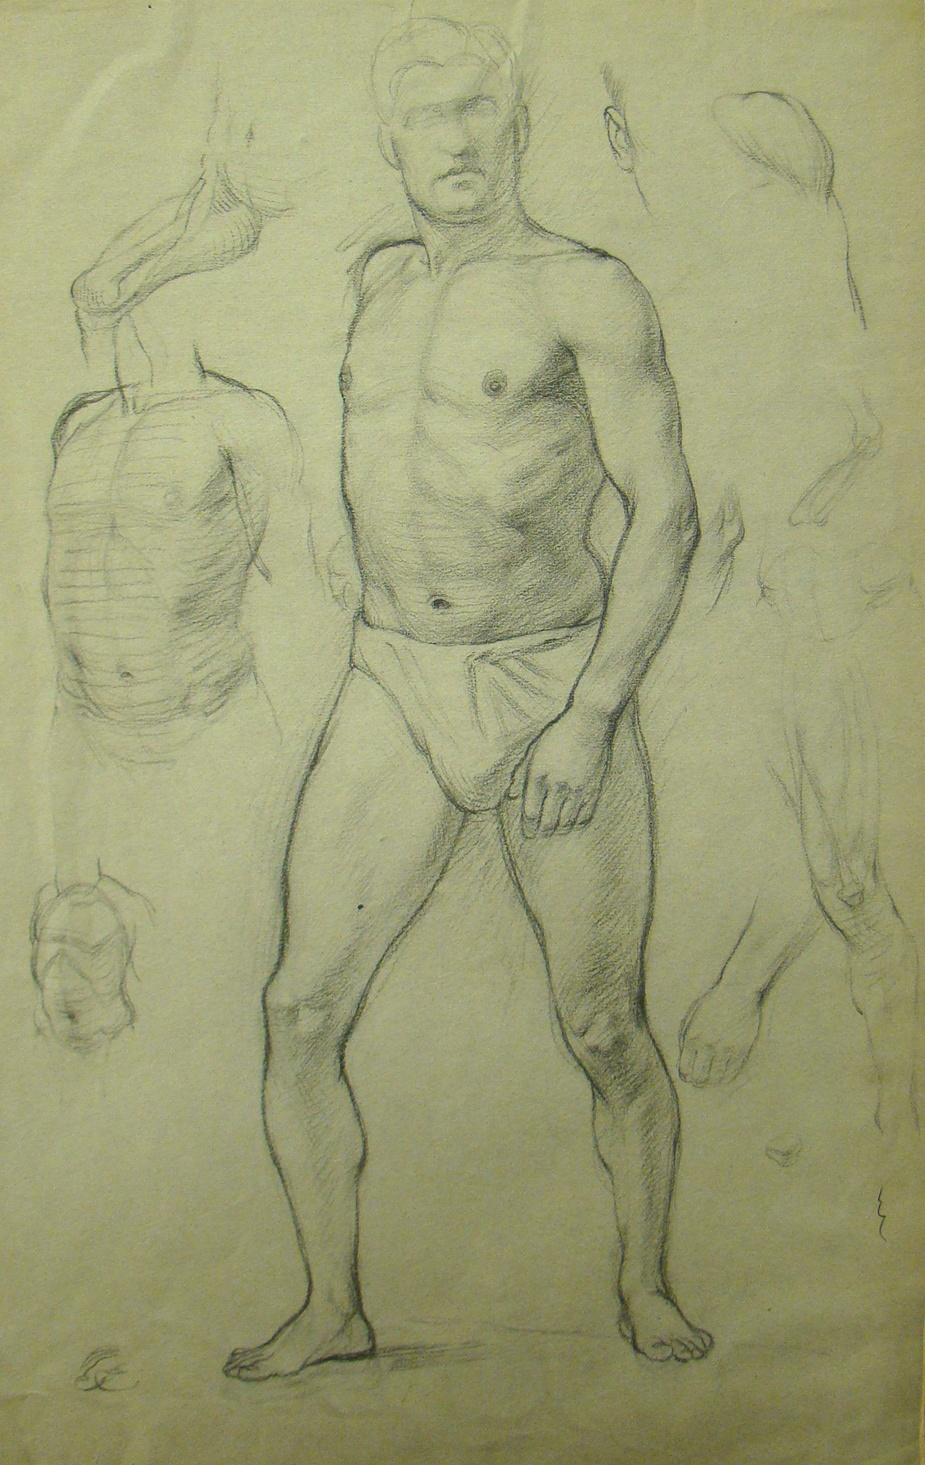 Another life drawing by Gerard Murphy - notice the life model is the life model in the photograph below!